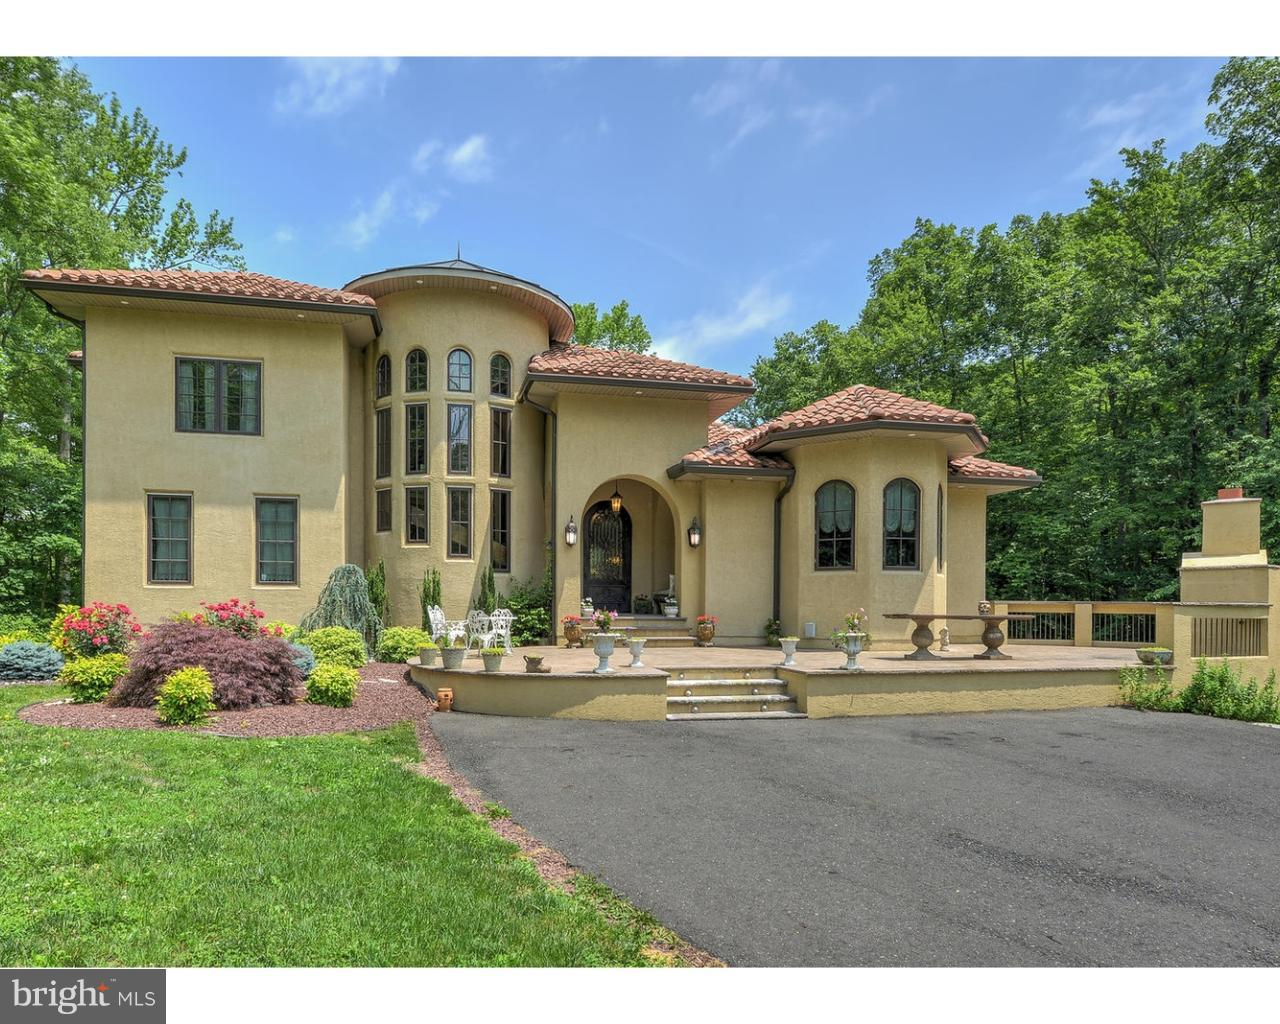 1208 JACKSONVILLE SMITHVILLE, BORDENTOWN, NJ 08505